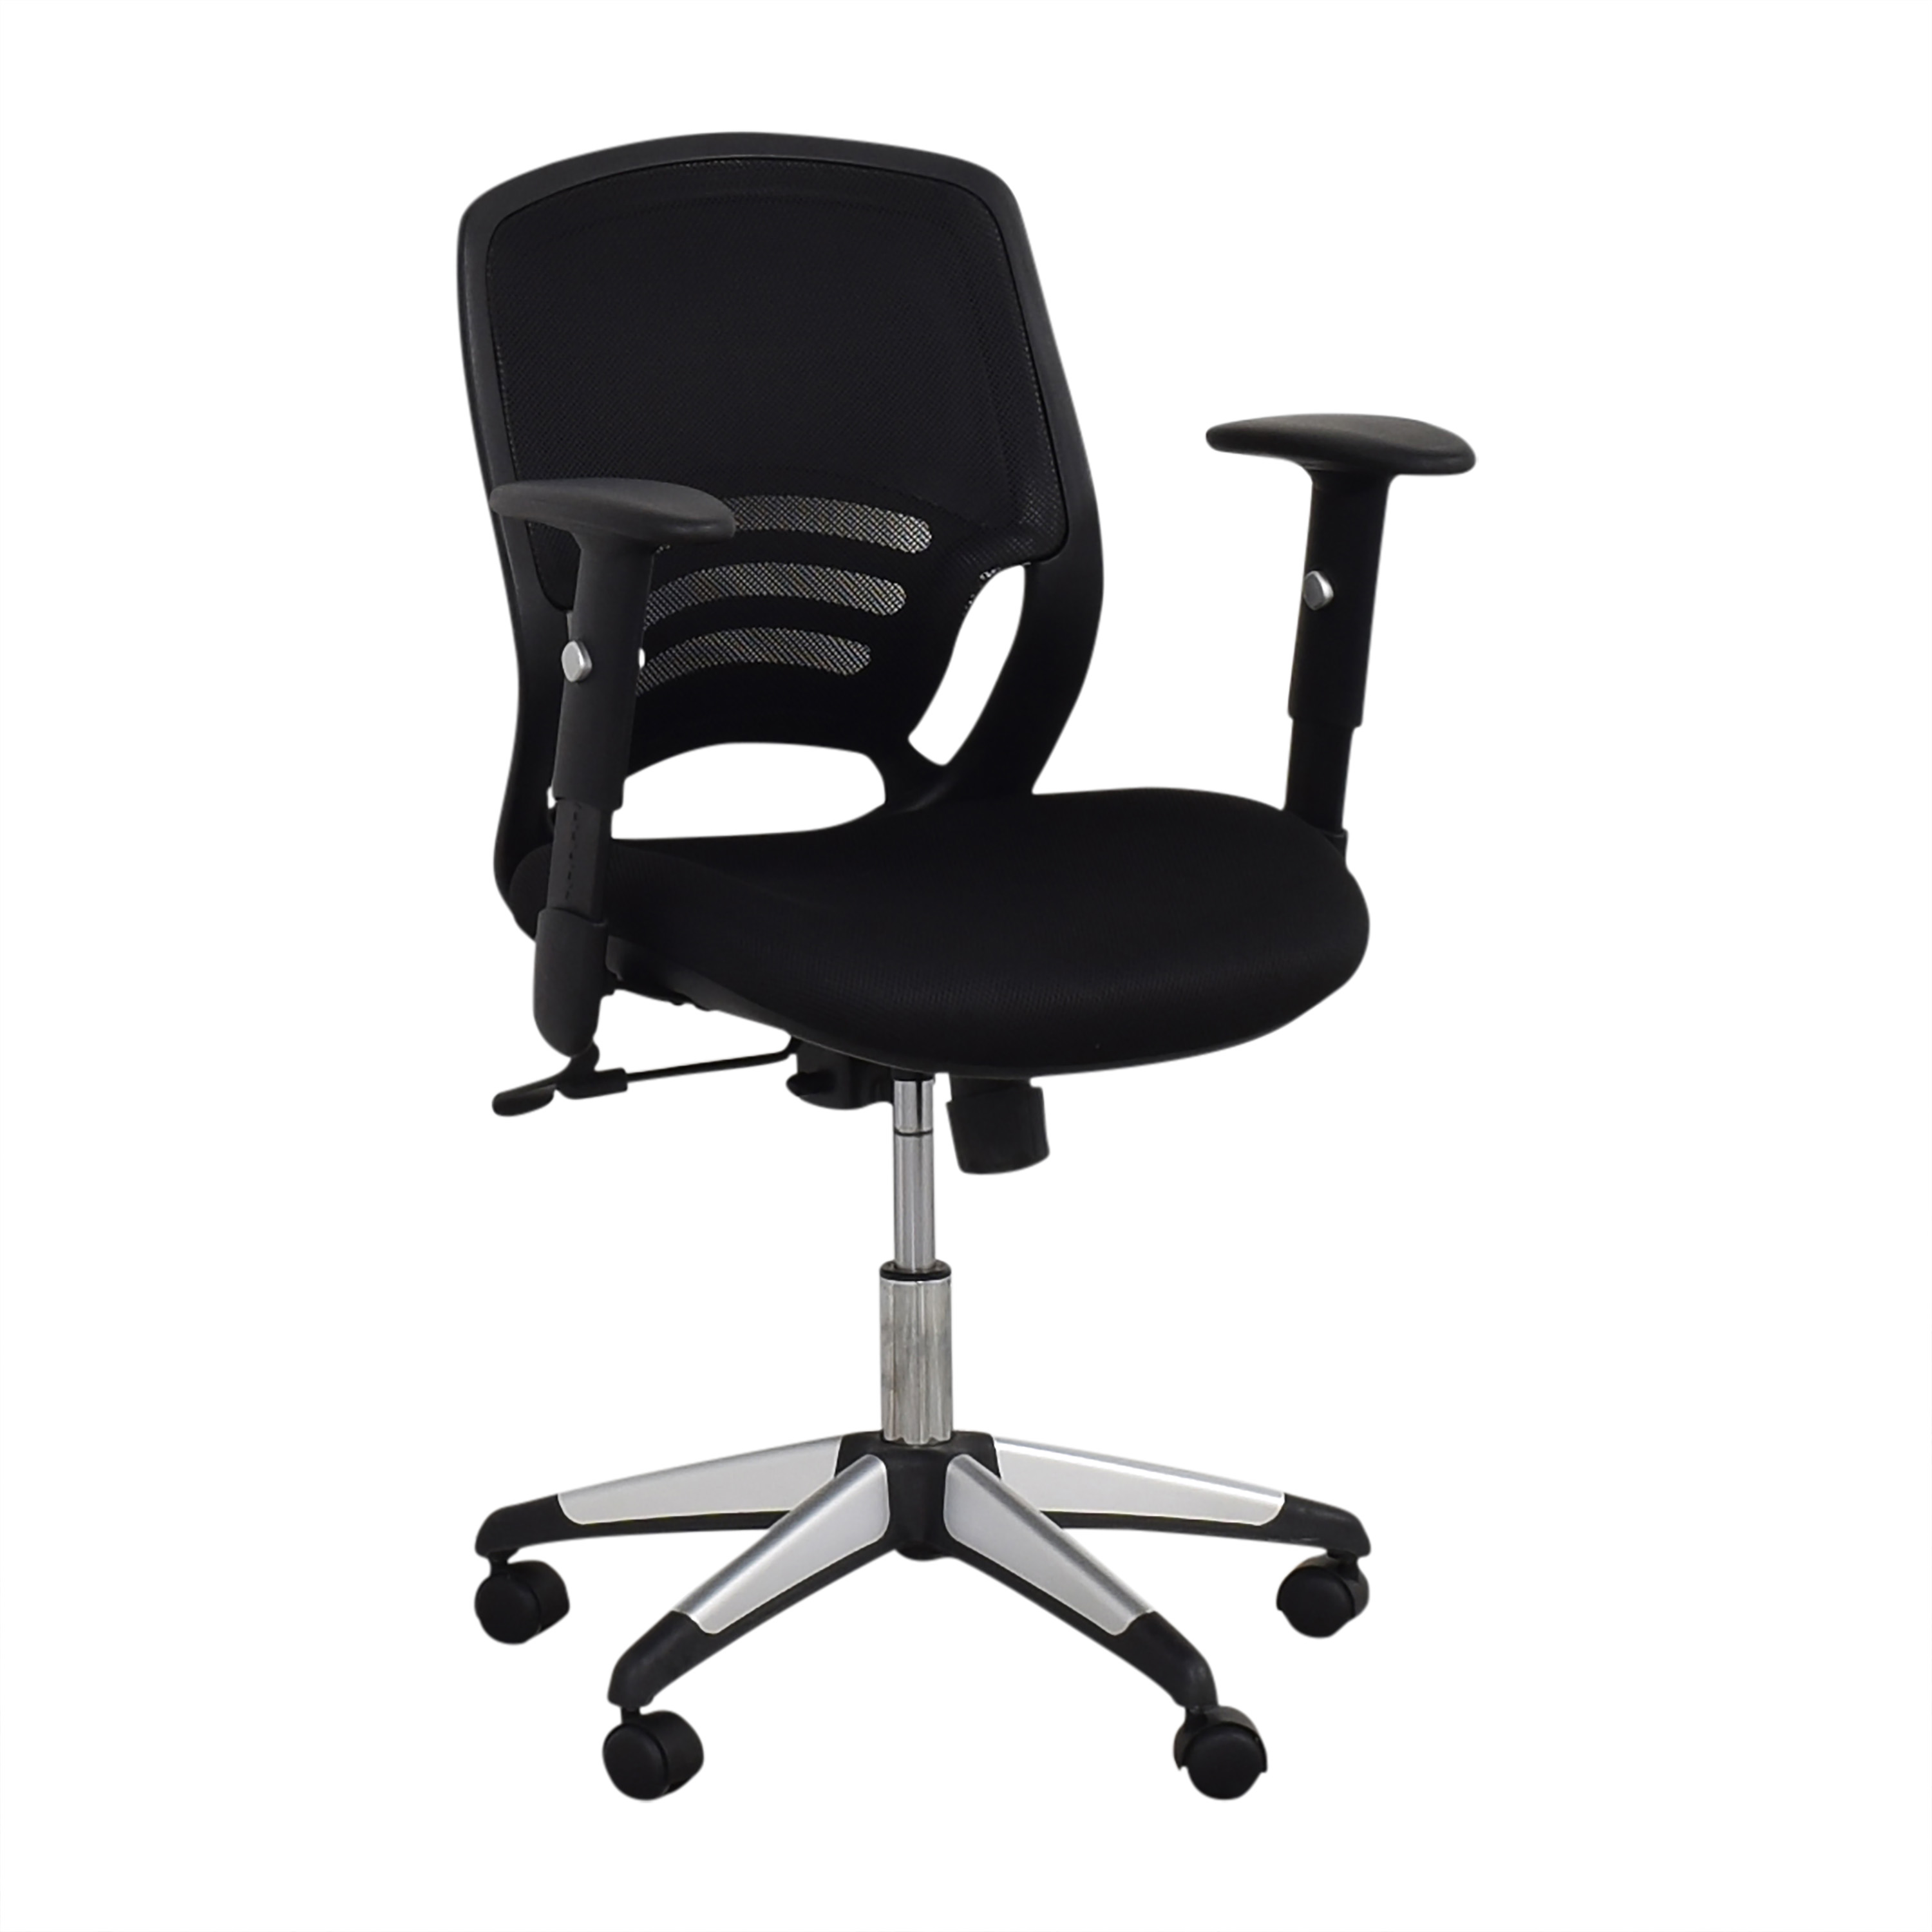 Offices to Go Offices to Go Mid Back Mesh Back Synchro-Tilter Office Chair  discount